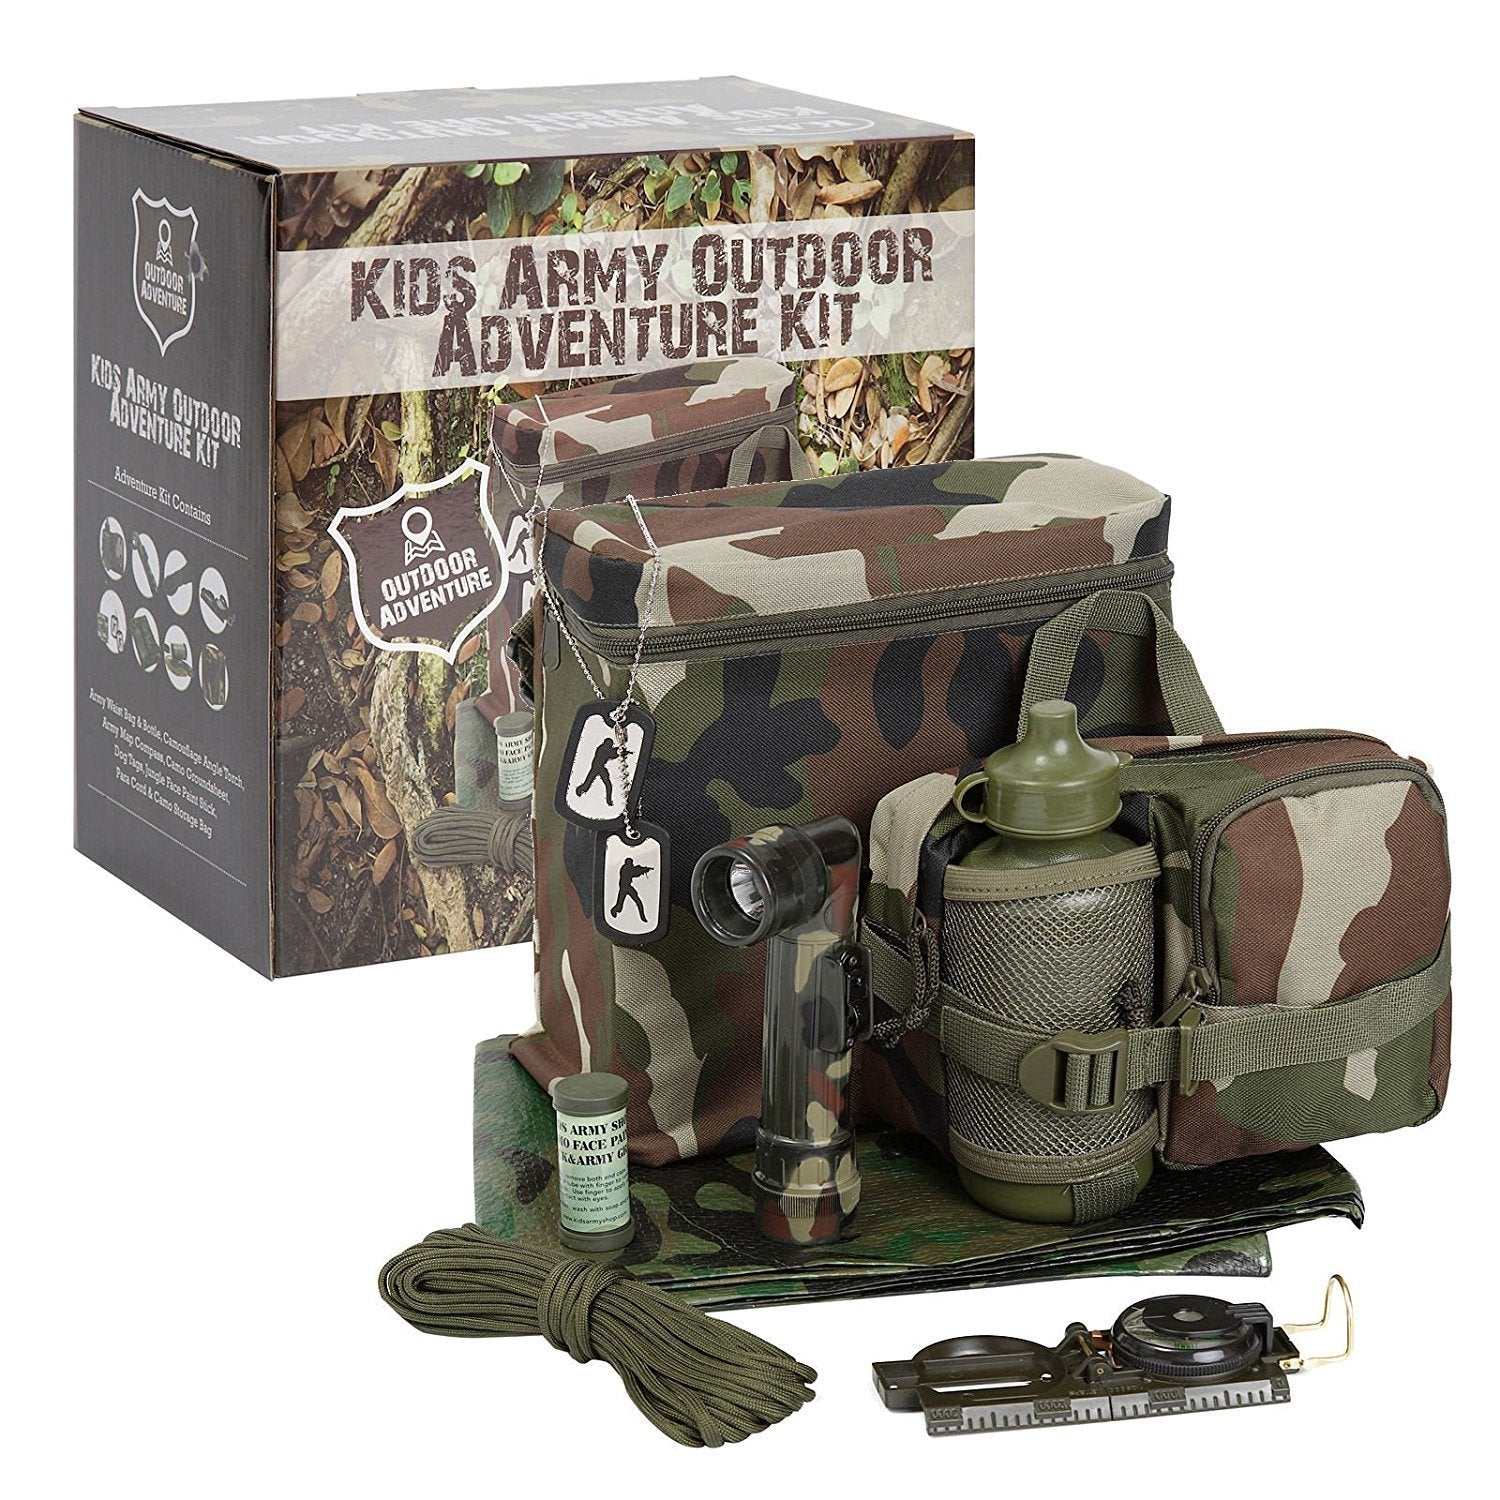 Kids Army Outdoor Adventure Kit - Camouflage Den Kit - Bear Essentials Clothing Company